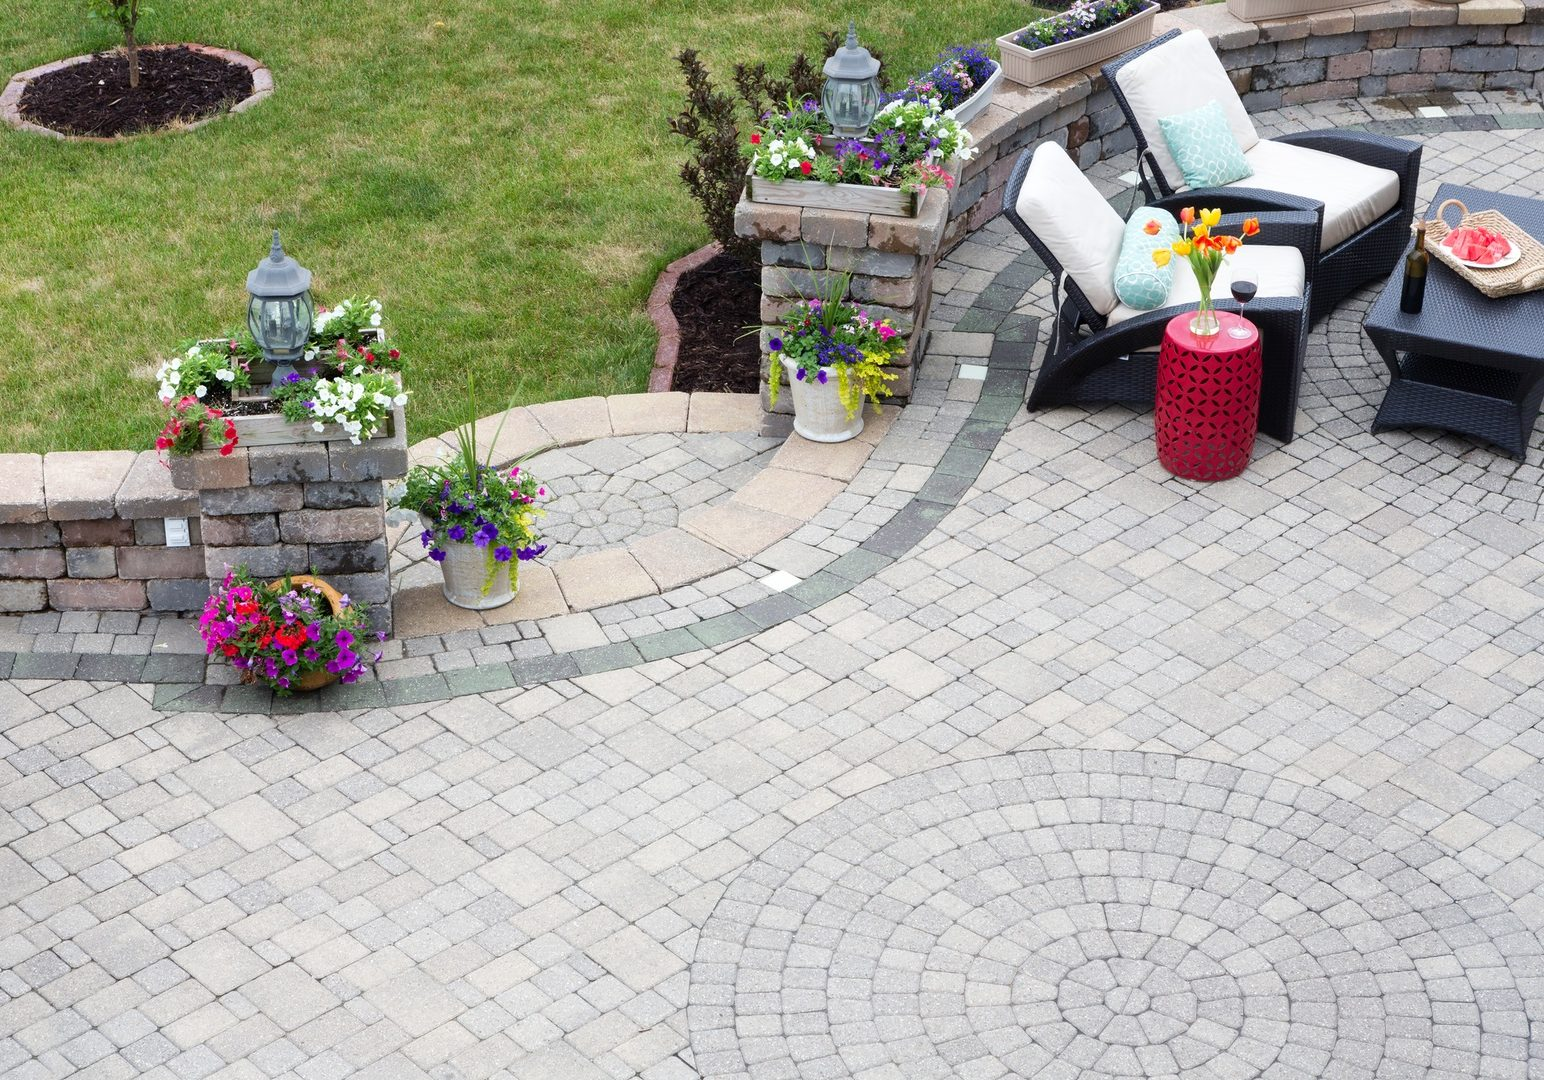 Decorative paving on an outdoor patio